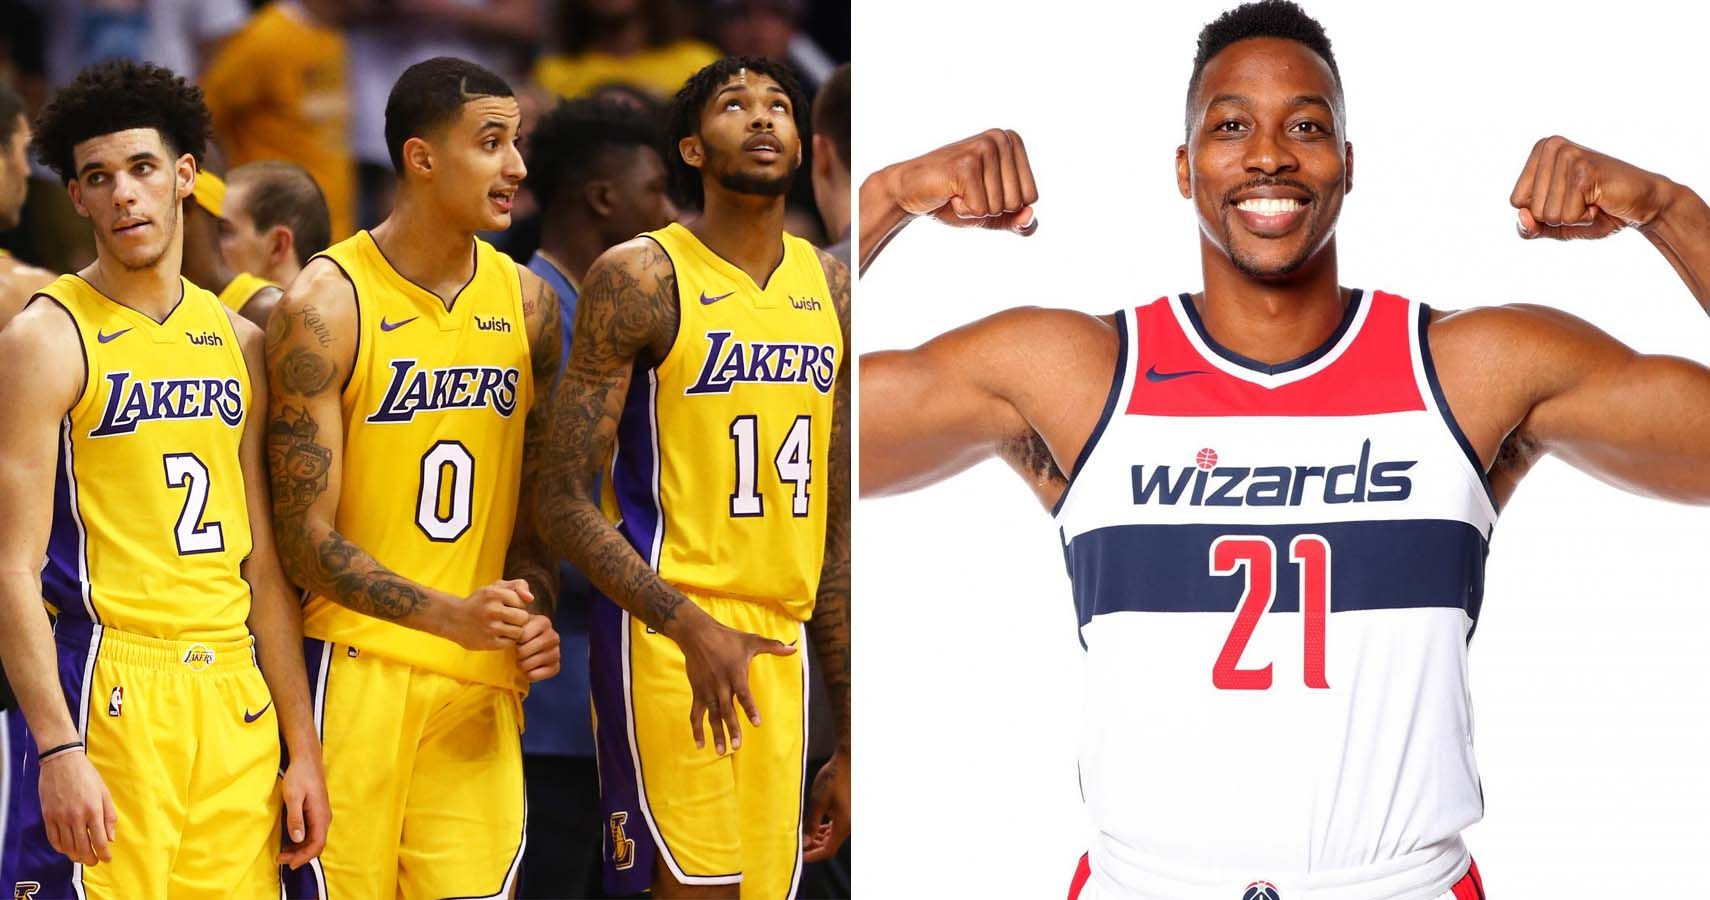 One Mistake Every NBA Team Needs To Avoid Making In 2018